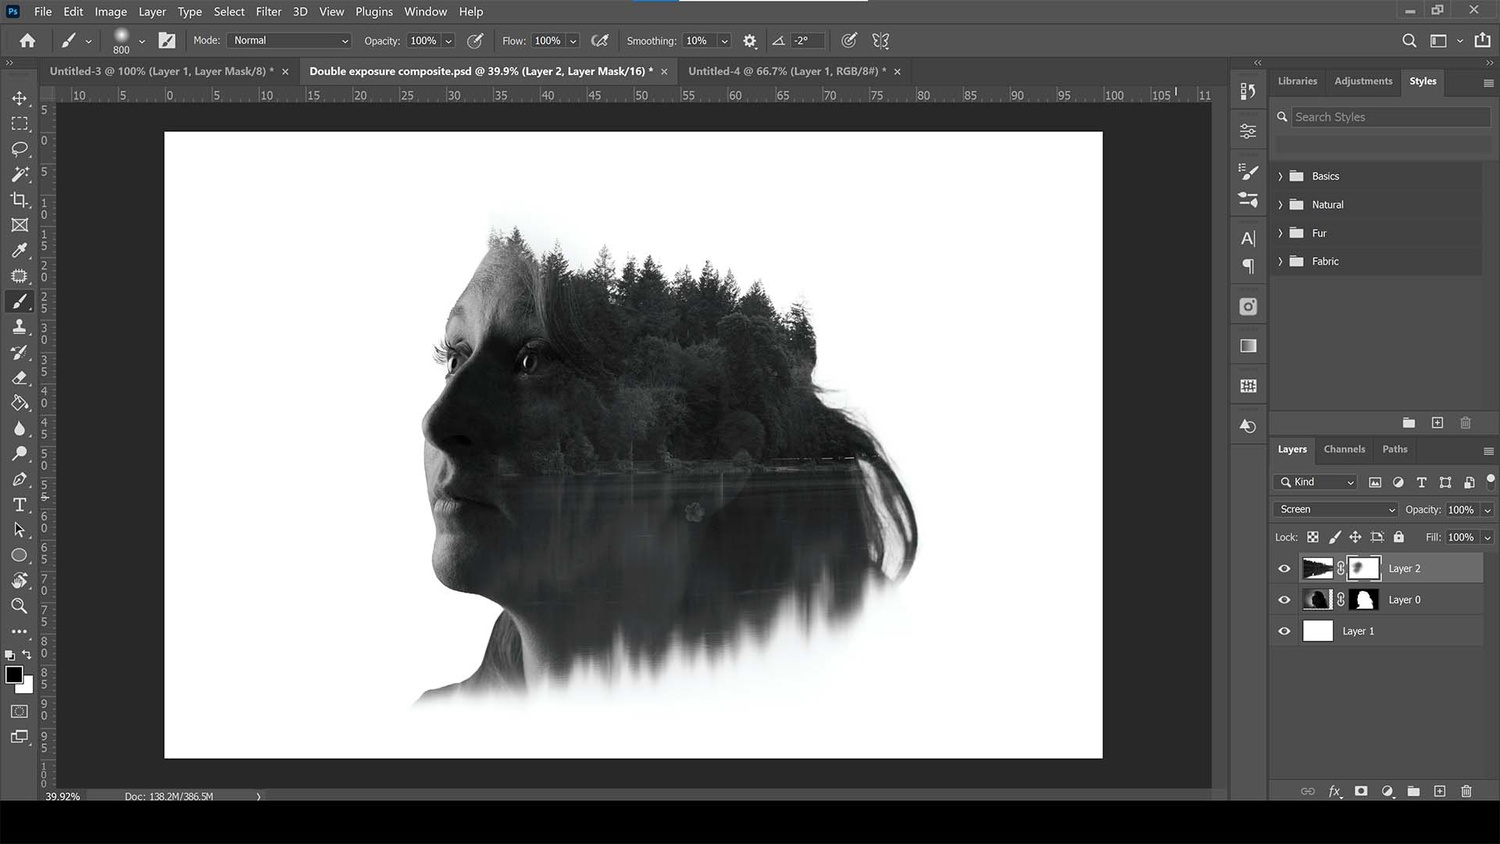 Mask the face with the brush tool